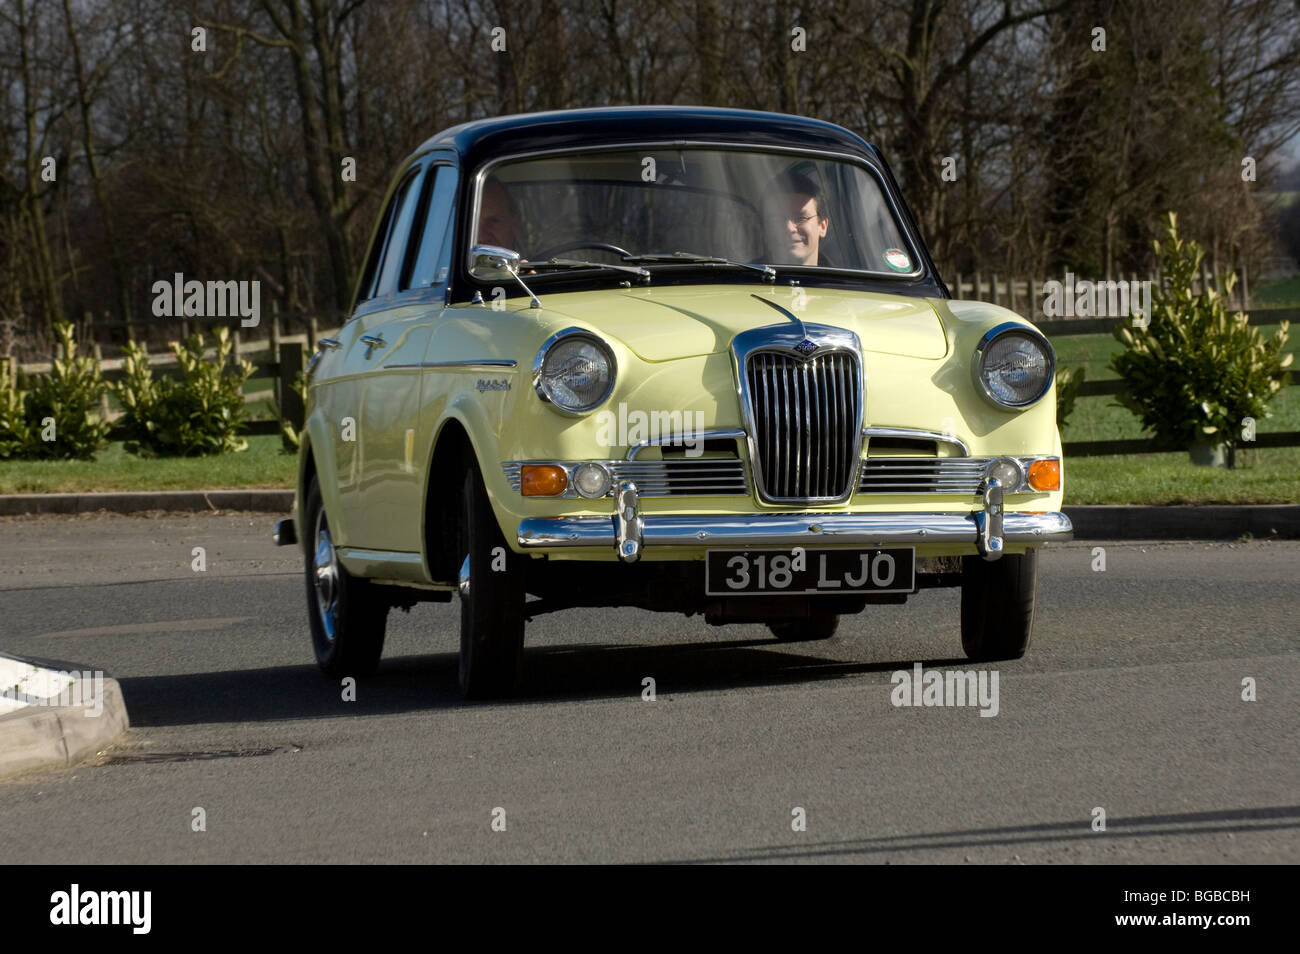 Saloon Car Family High Resolution Stock Photography And Images Alamy